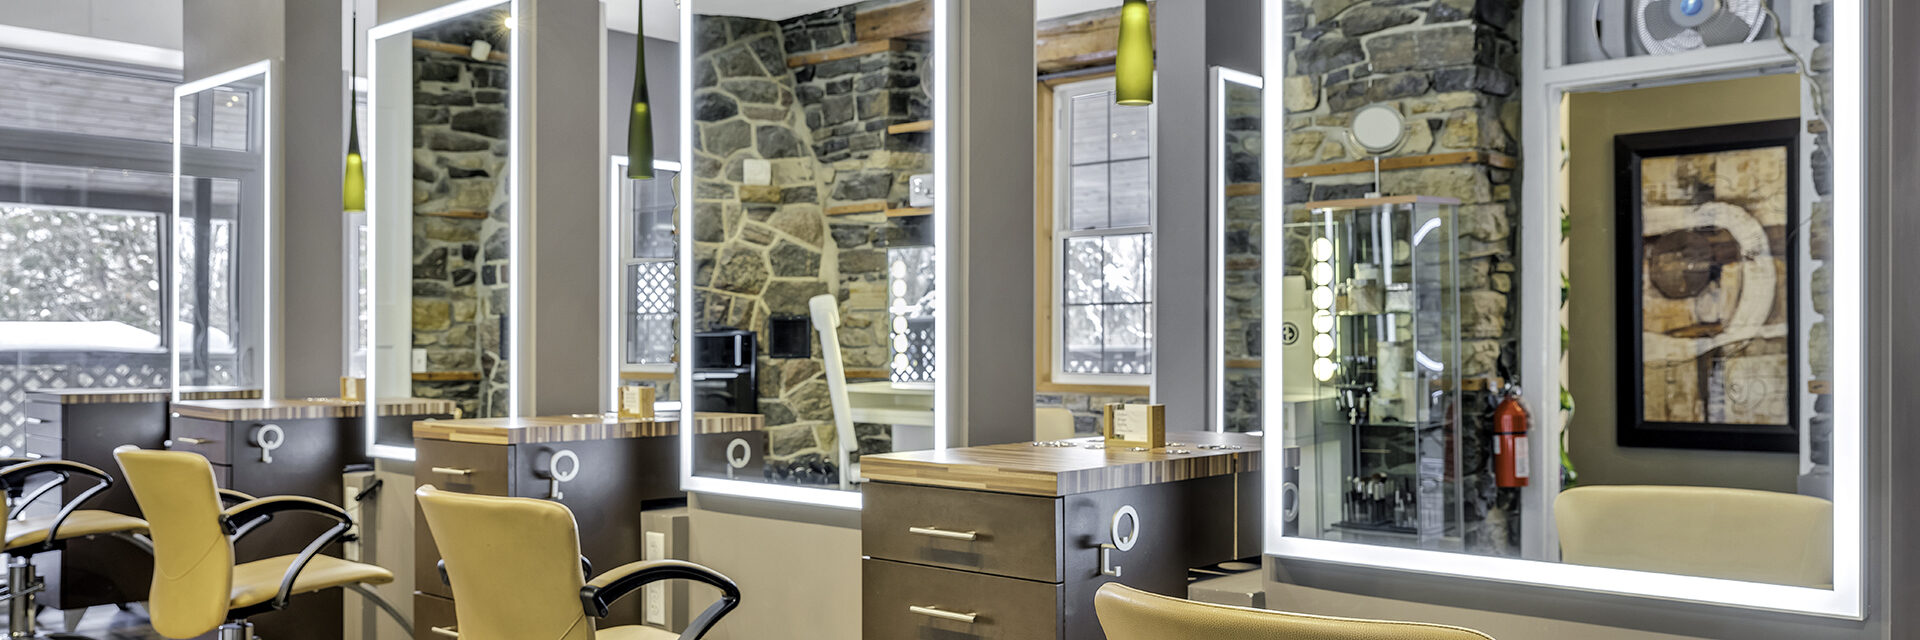 Hair stylist and salon seats at Jask